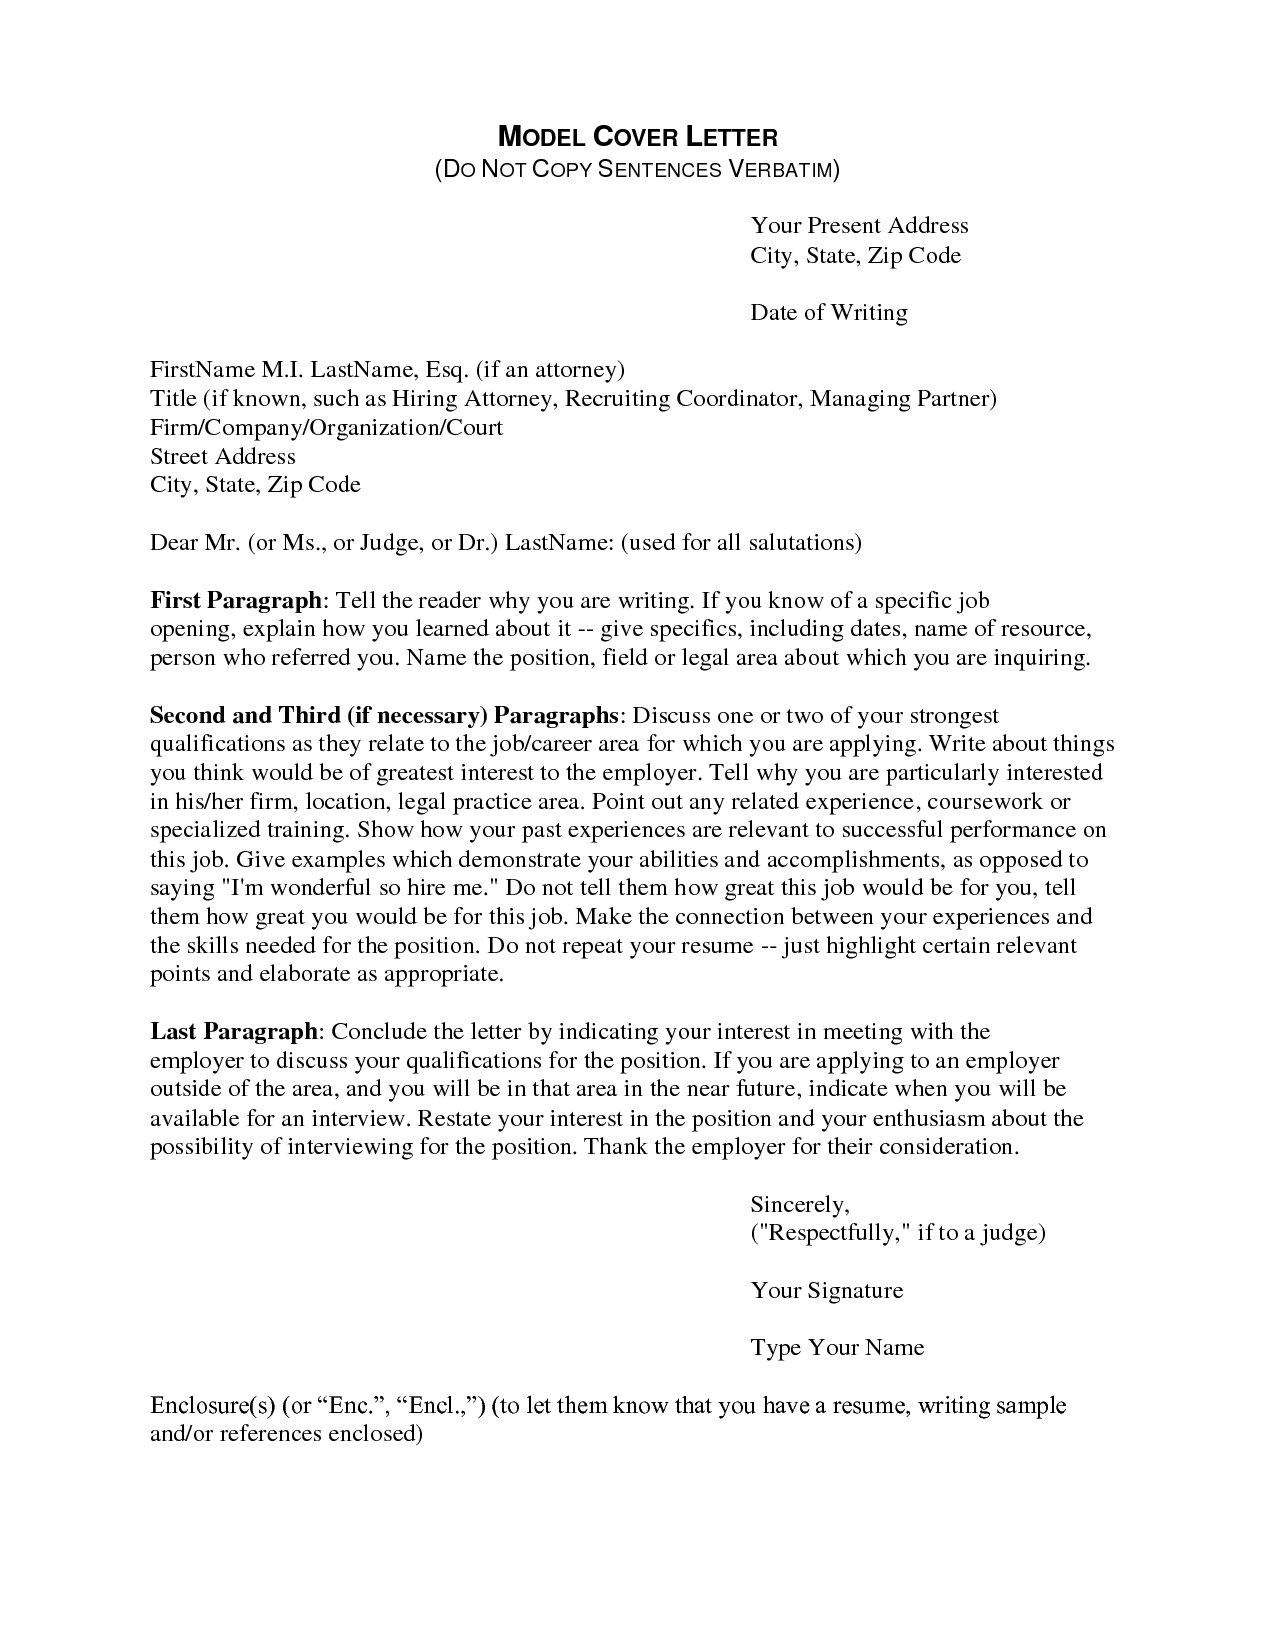 Attorney Cover Letter Cover Letter Usa Templates Example Resume Jobs Best Online Builder